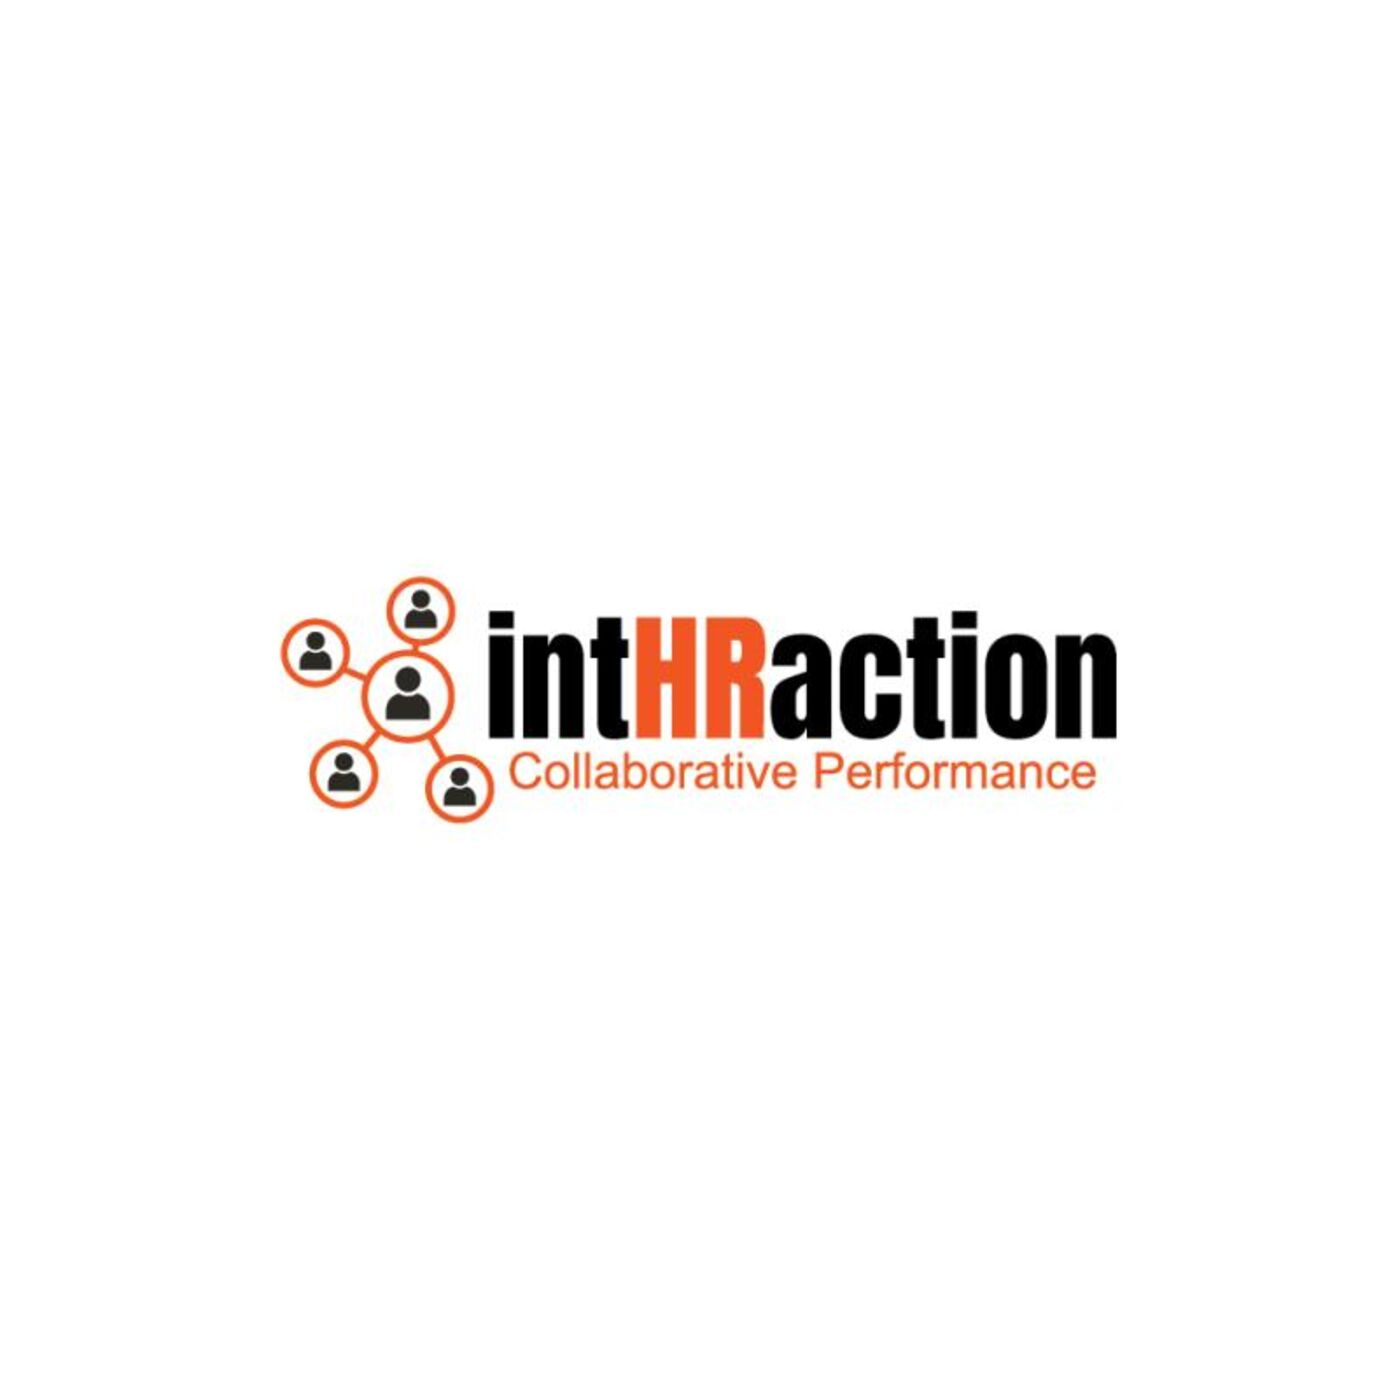 Checkout IntHRaction